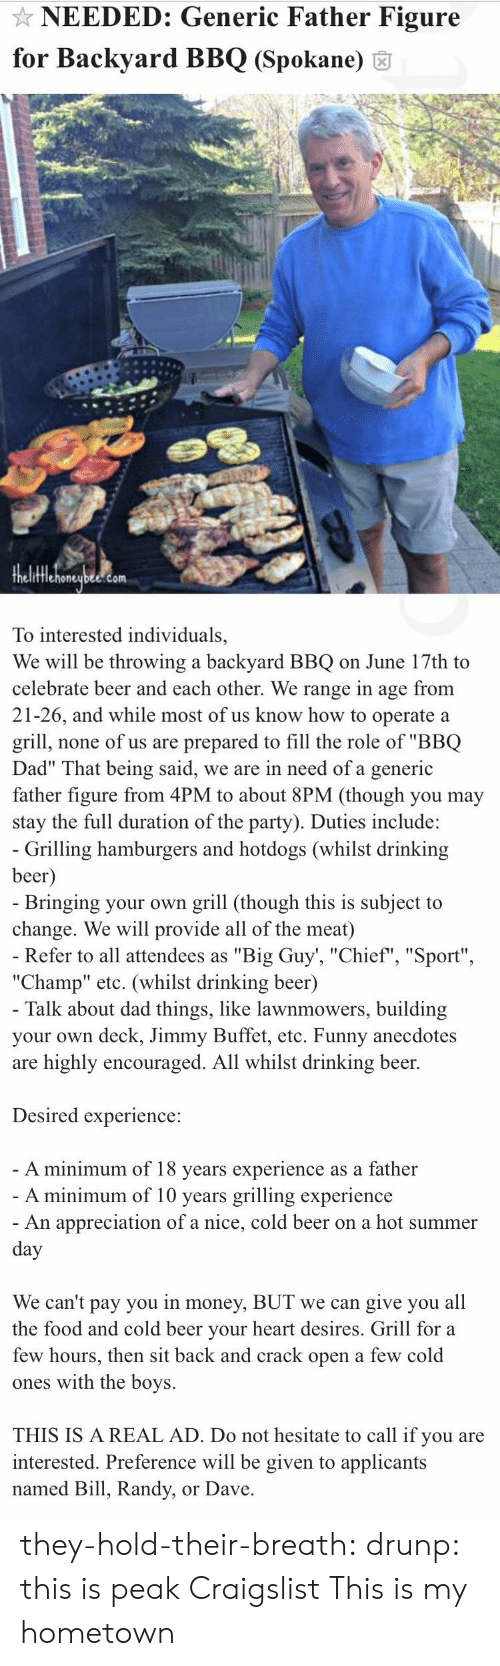 """Big Guy: NEEDED: Generic Father Figure  for Backyard BBQ (Spokane) 6  fflehoneubee.com  To interested individuals,  We will be throwing a backyard BBQ on June 17th to  celebrate beer and each other. We range in age from  21-26, and while most of us know how to operate a  grill, none of us are prepared to fill the role of """"BBQ  Dad"""" That being said, we are in need of a generic  father figure from 4PM to about 8PM (though you may  stay the full duration of the party). Duties include:   Grilling hamburgers and hotdogs (whilst drinking  beer  Bringing your own grill (though this is subject to  change. We will provide all of the meat)  Refer to all attendees as """"Big Guy', """"Chief"""", """"Sport""""  """"Champ"""" etc. (whilst drinking beer)  Talk about dad things, like lawnmowers, building  your own deck, Jimmy Buffet, etc. Funny anecdotes  are highly encouraged. All whilst drinking beer.  Desired experience:  A minimum of 18 vears experience as a father  A minimum of 10 years grilling experience  An appreciation of a nice, cold beer on a hot summer  We can't pay you in money, BUT we can give you all  the food and cold beer vour heart desires. Grill for a  few hours, then sit back and crack open a few cold  ones with the boys.  THIS IS A REAL AD. Do not hesitate to call if you are  interested. Preference will be given to applicants  named Bill, Randy, or Dave they-hold-their-breath:  drunp: this is peak Craigslist  This is my hometown"""